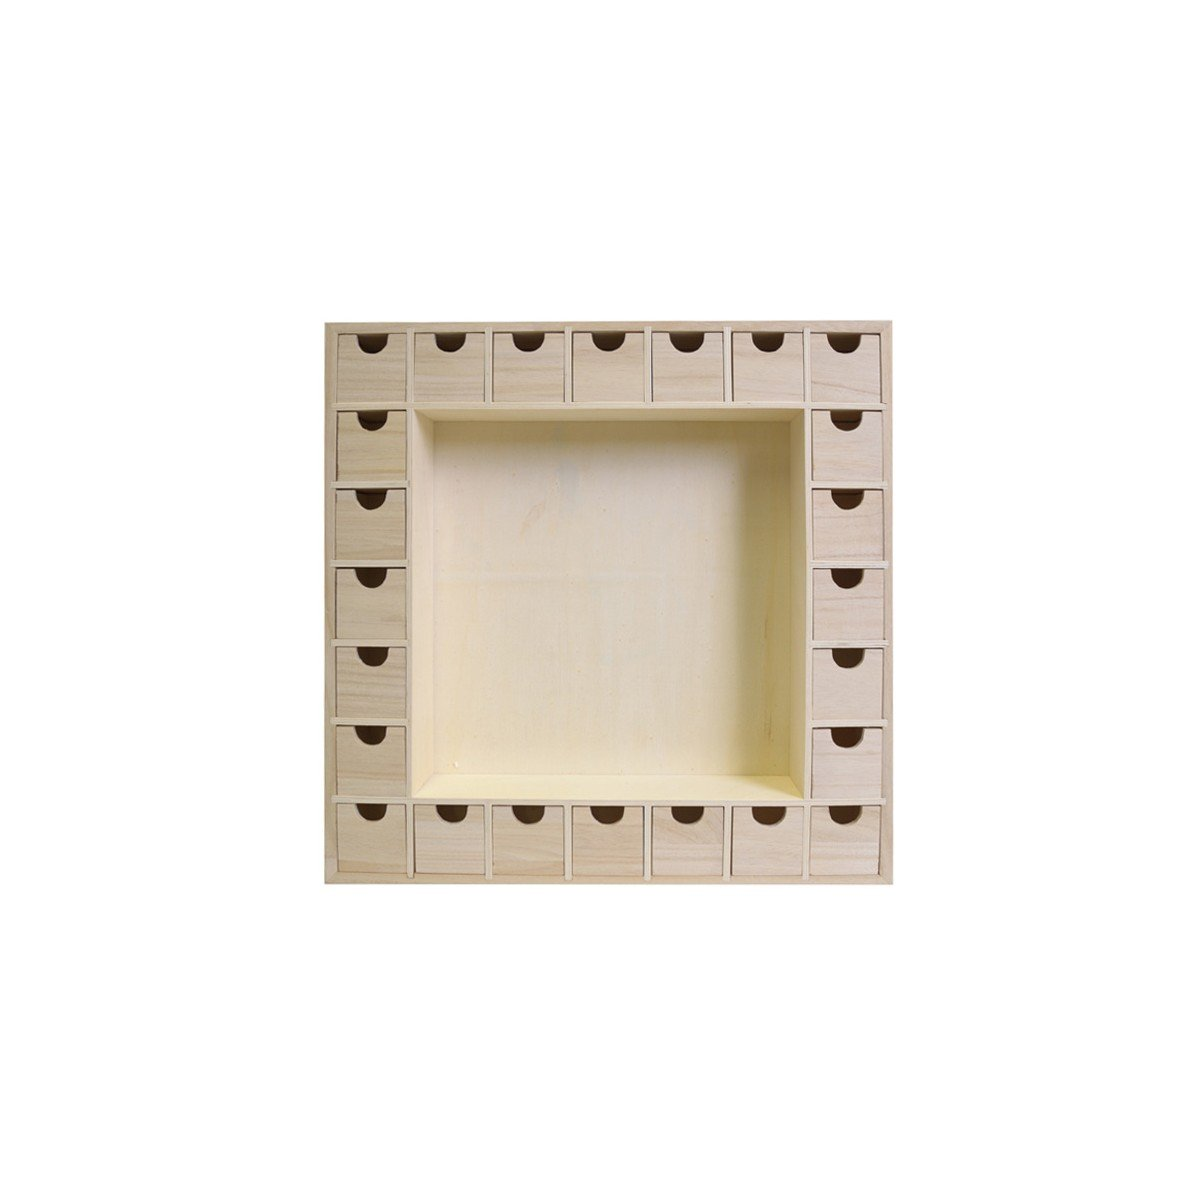 Artemio 39 x 39.5 x 6.5 cm Square Wooden Advent Calendar with Drawers to Decorate, Beige 14001541